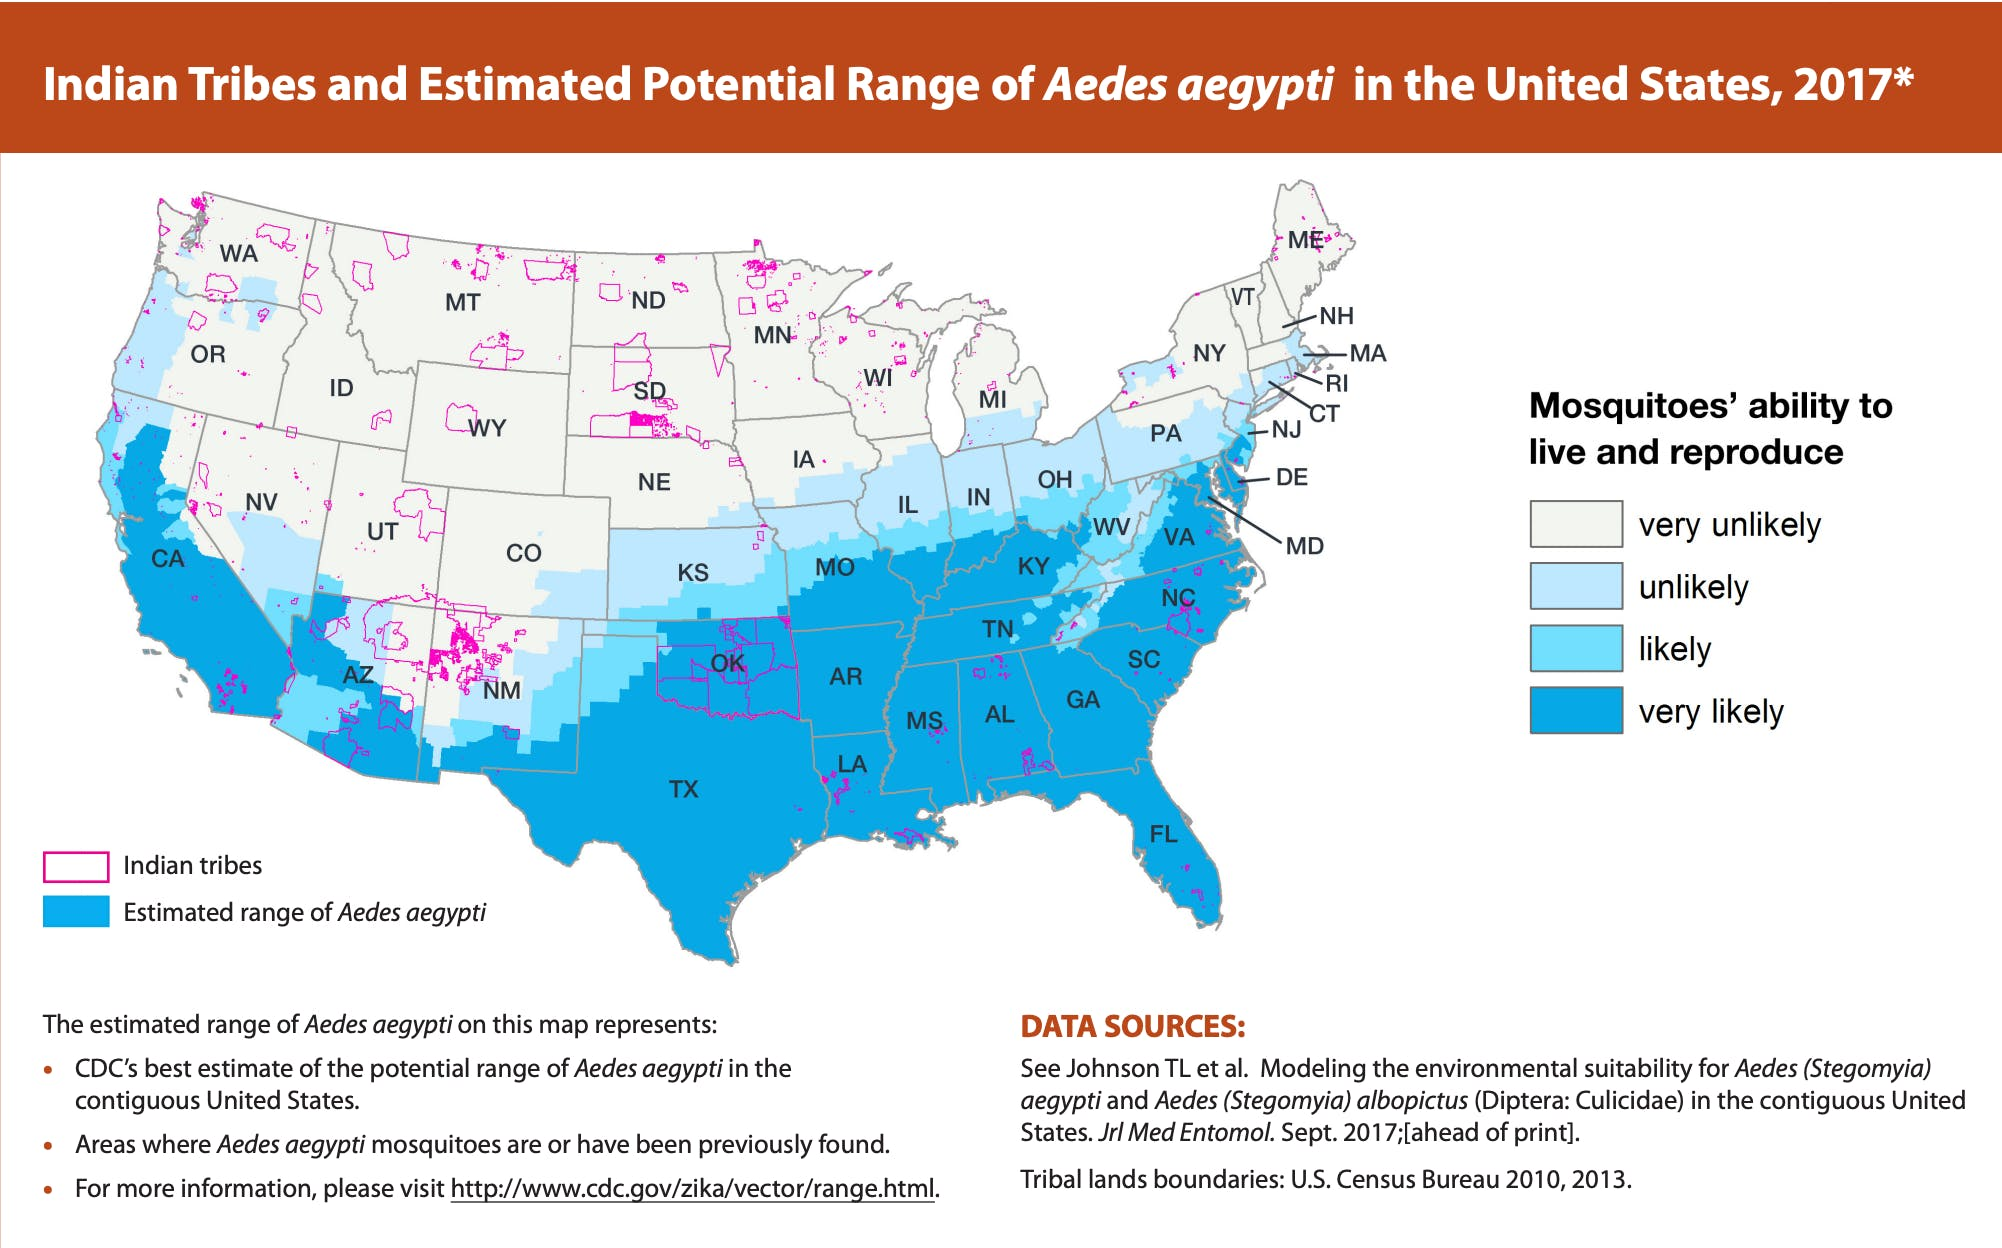 A map showing Aedes aegypti's range in the United States and Indigenous reservations, covering most of the US South and Southwest